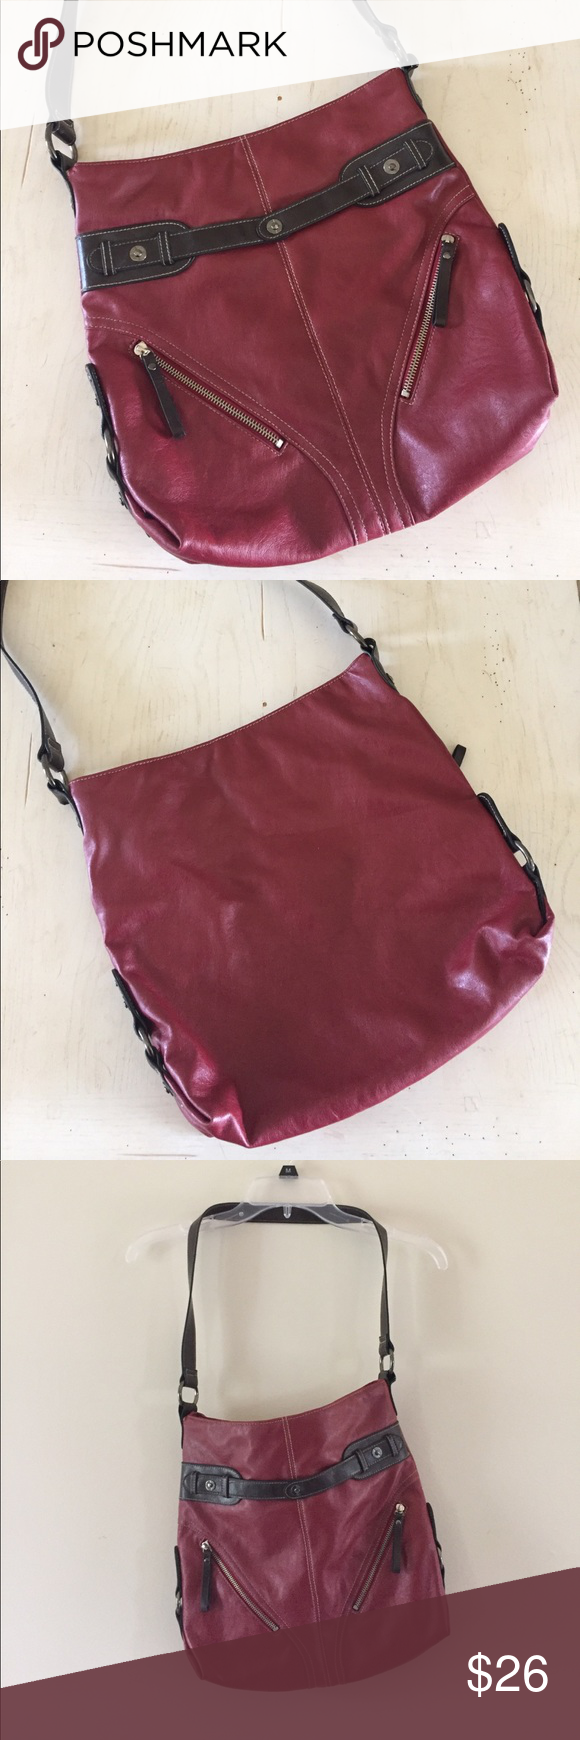 Red and brown shoulder bag Red and brown shoulder bag. Approximately 12 x 12. One button snap closer. Bags Shoulder Bags